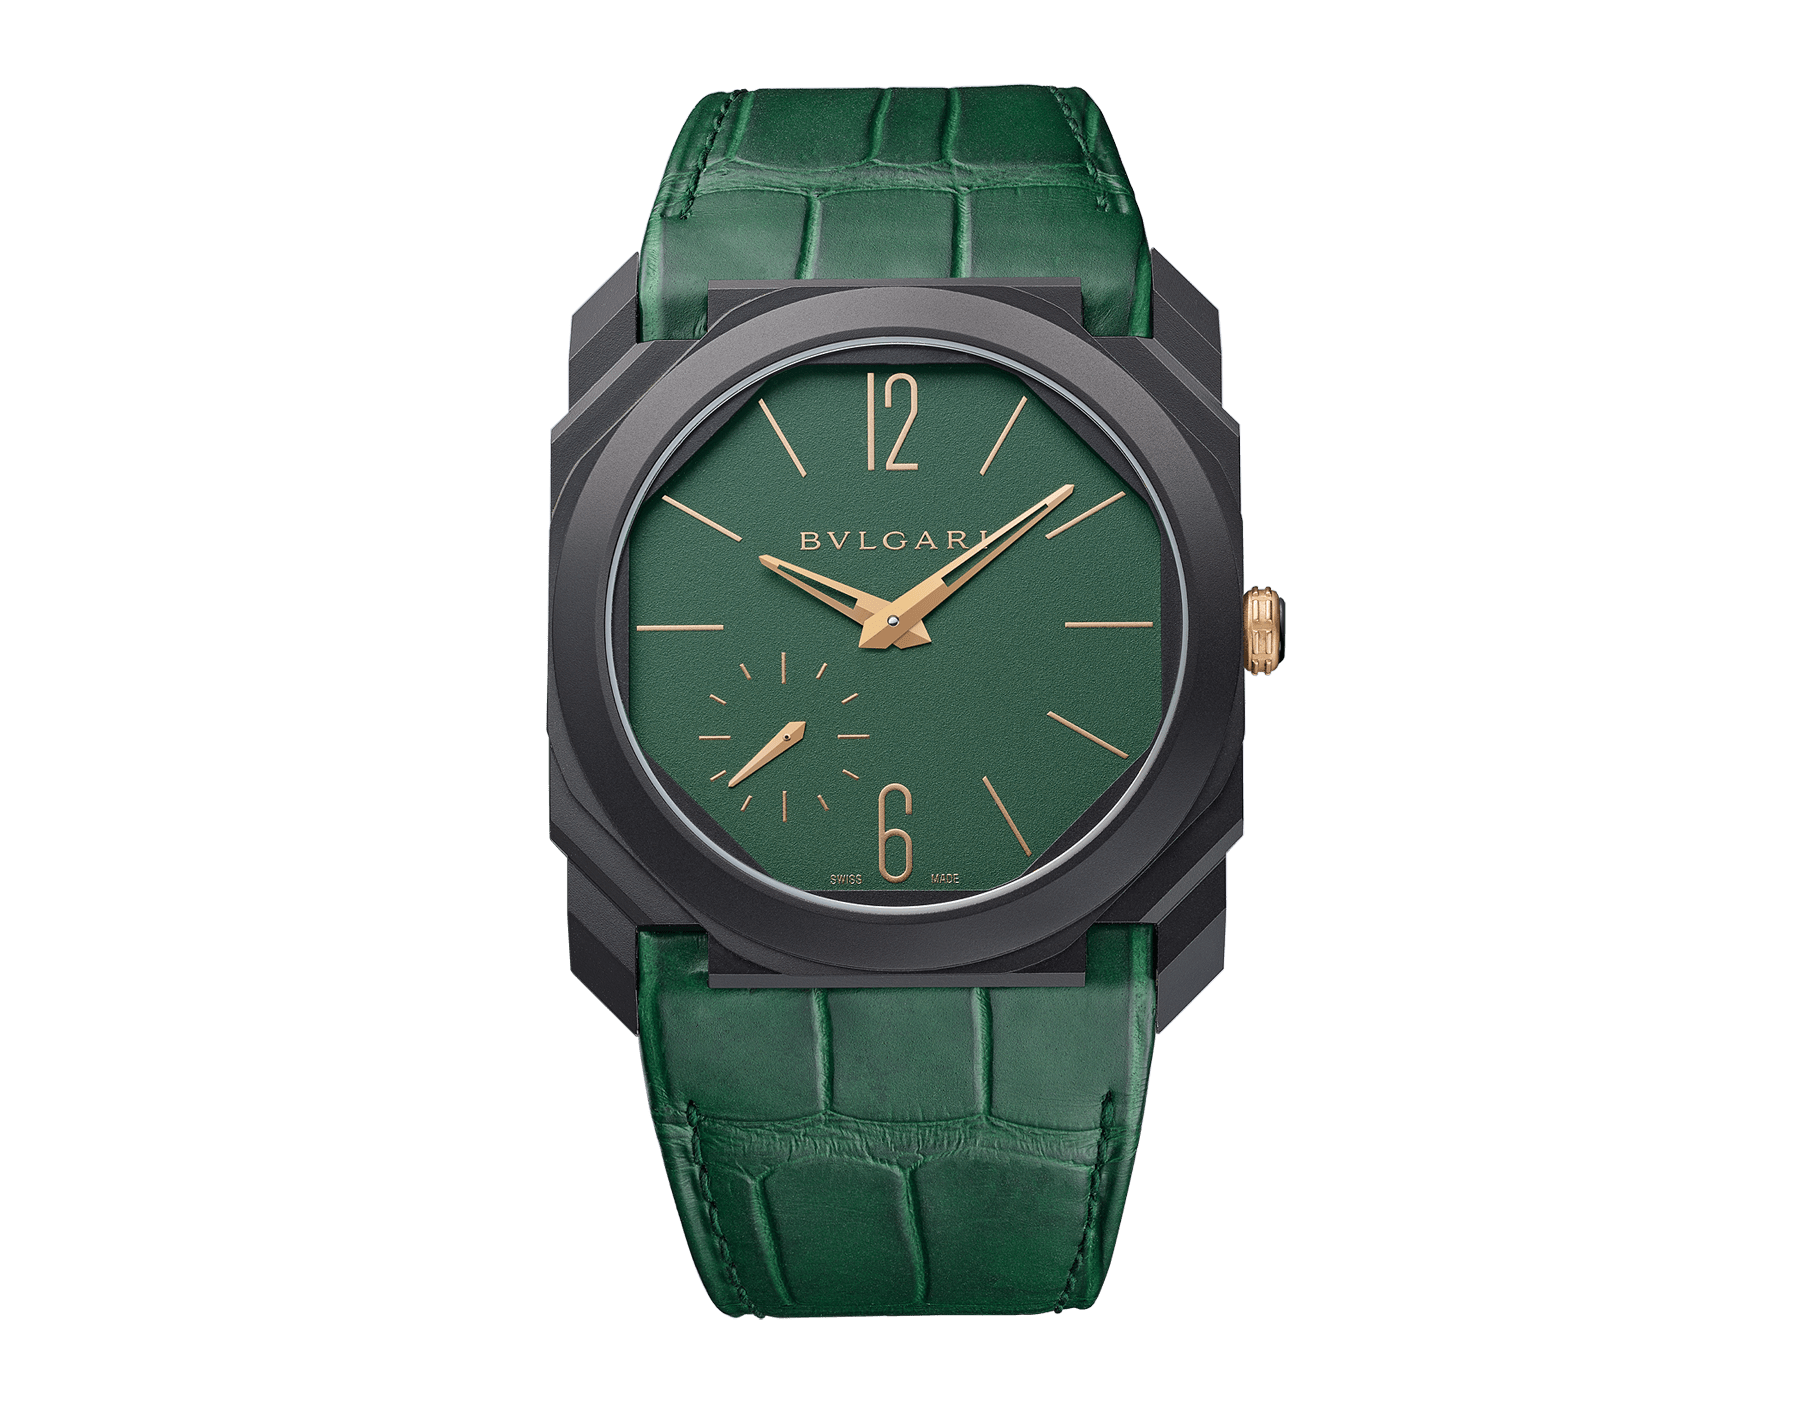 Octo Finissimo Automatic watch with extra-thin mechanical manufacture movement, automatic winding with platinum microrotor, small seconds, 40 mm titanium case with Diamond Like Carbon treatment, transparent case back, green dial and green alligator bracelet. Water-resistant up to 30 metres 103151 image 1